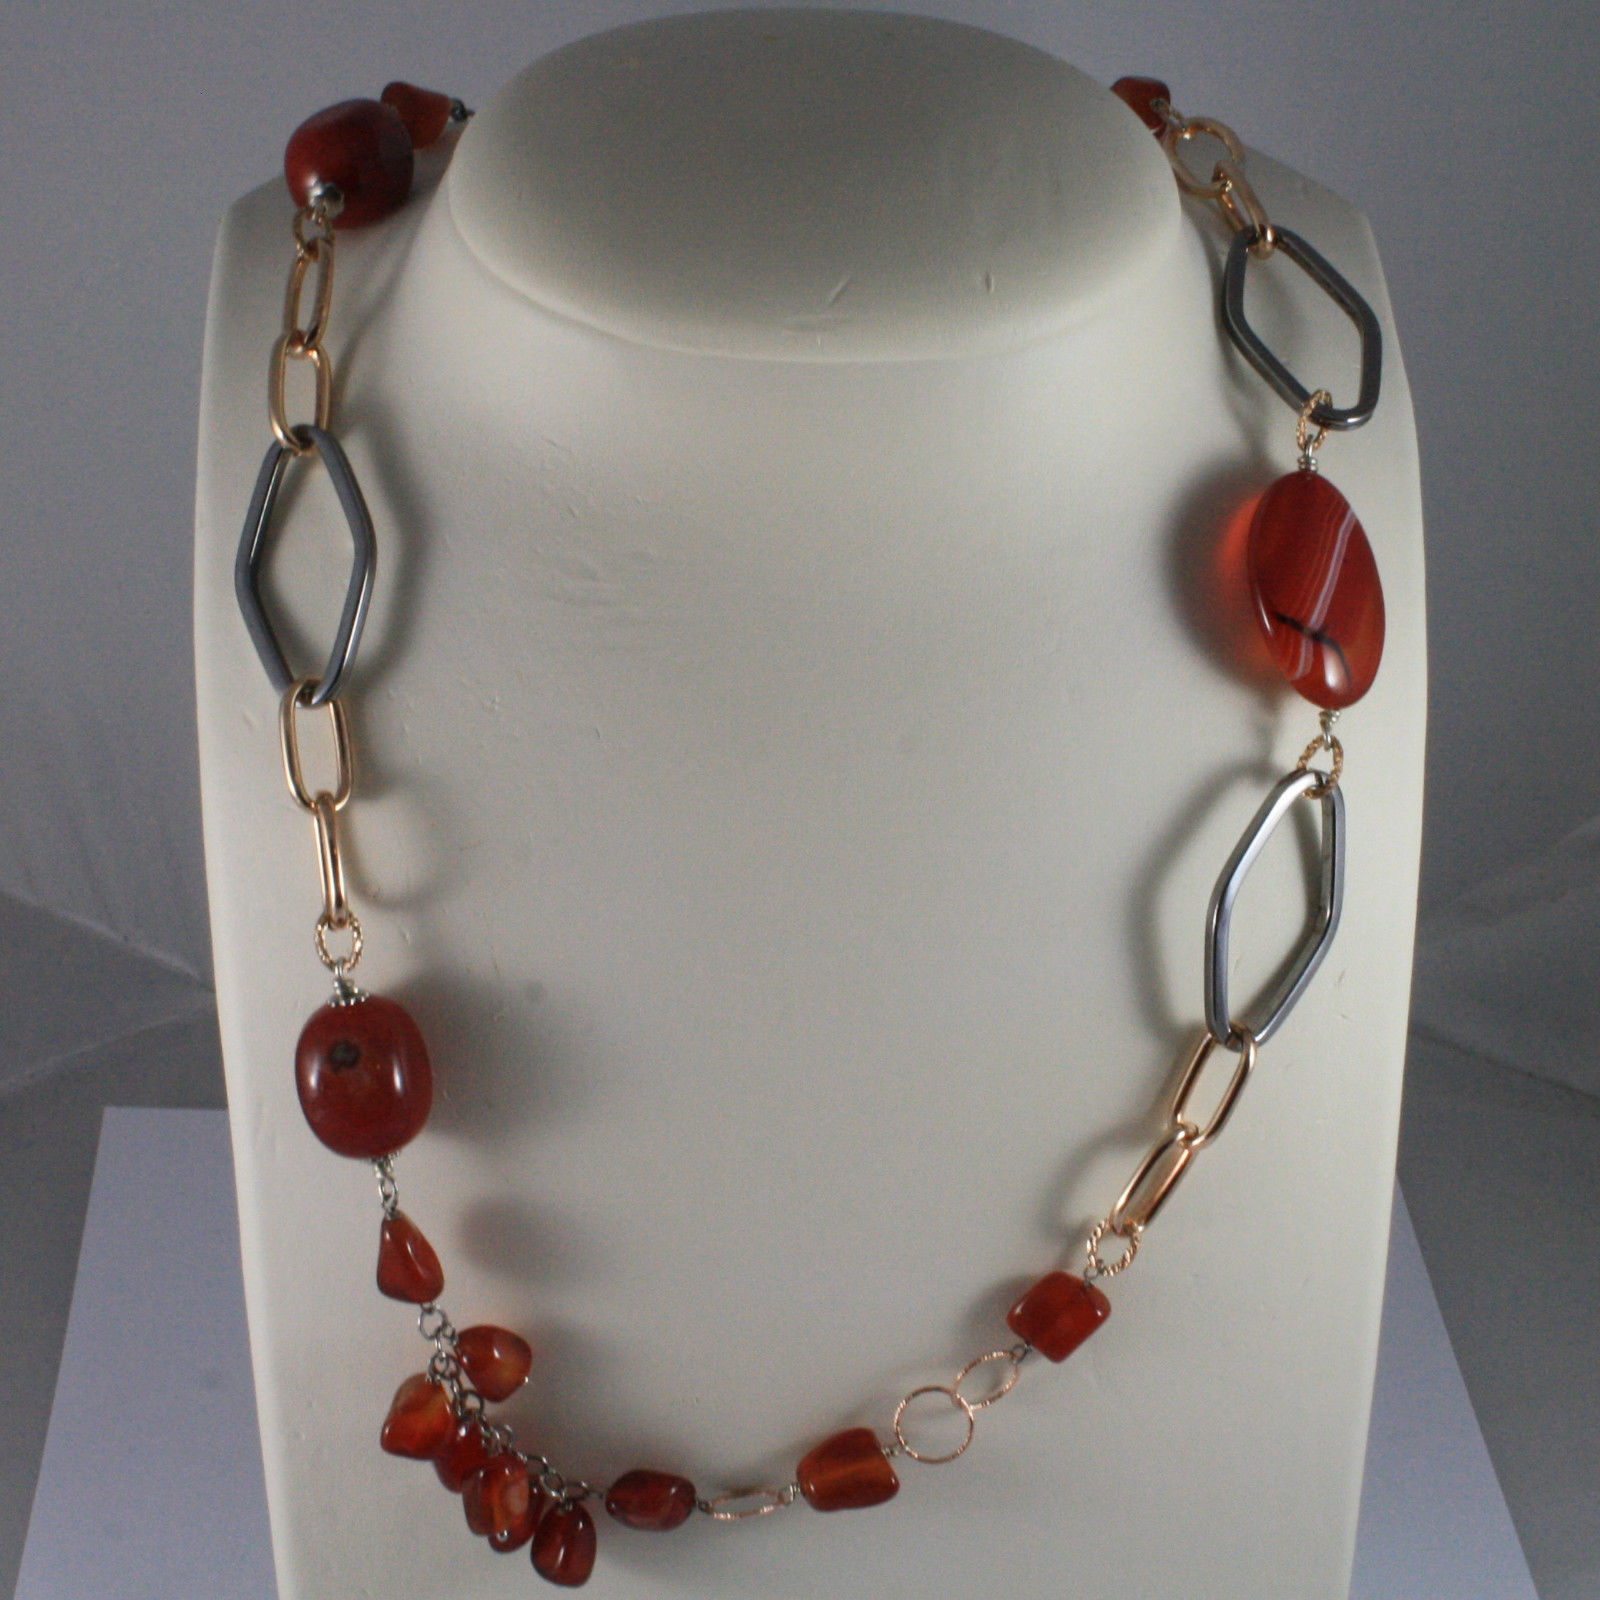 .925 SILVER RHODIUM ROSE GOLD PLATED AND BURNISHED NECKLACE WITH CARNELIAN-AGATE